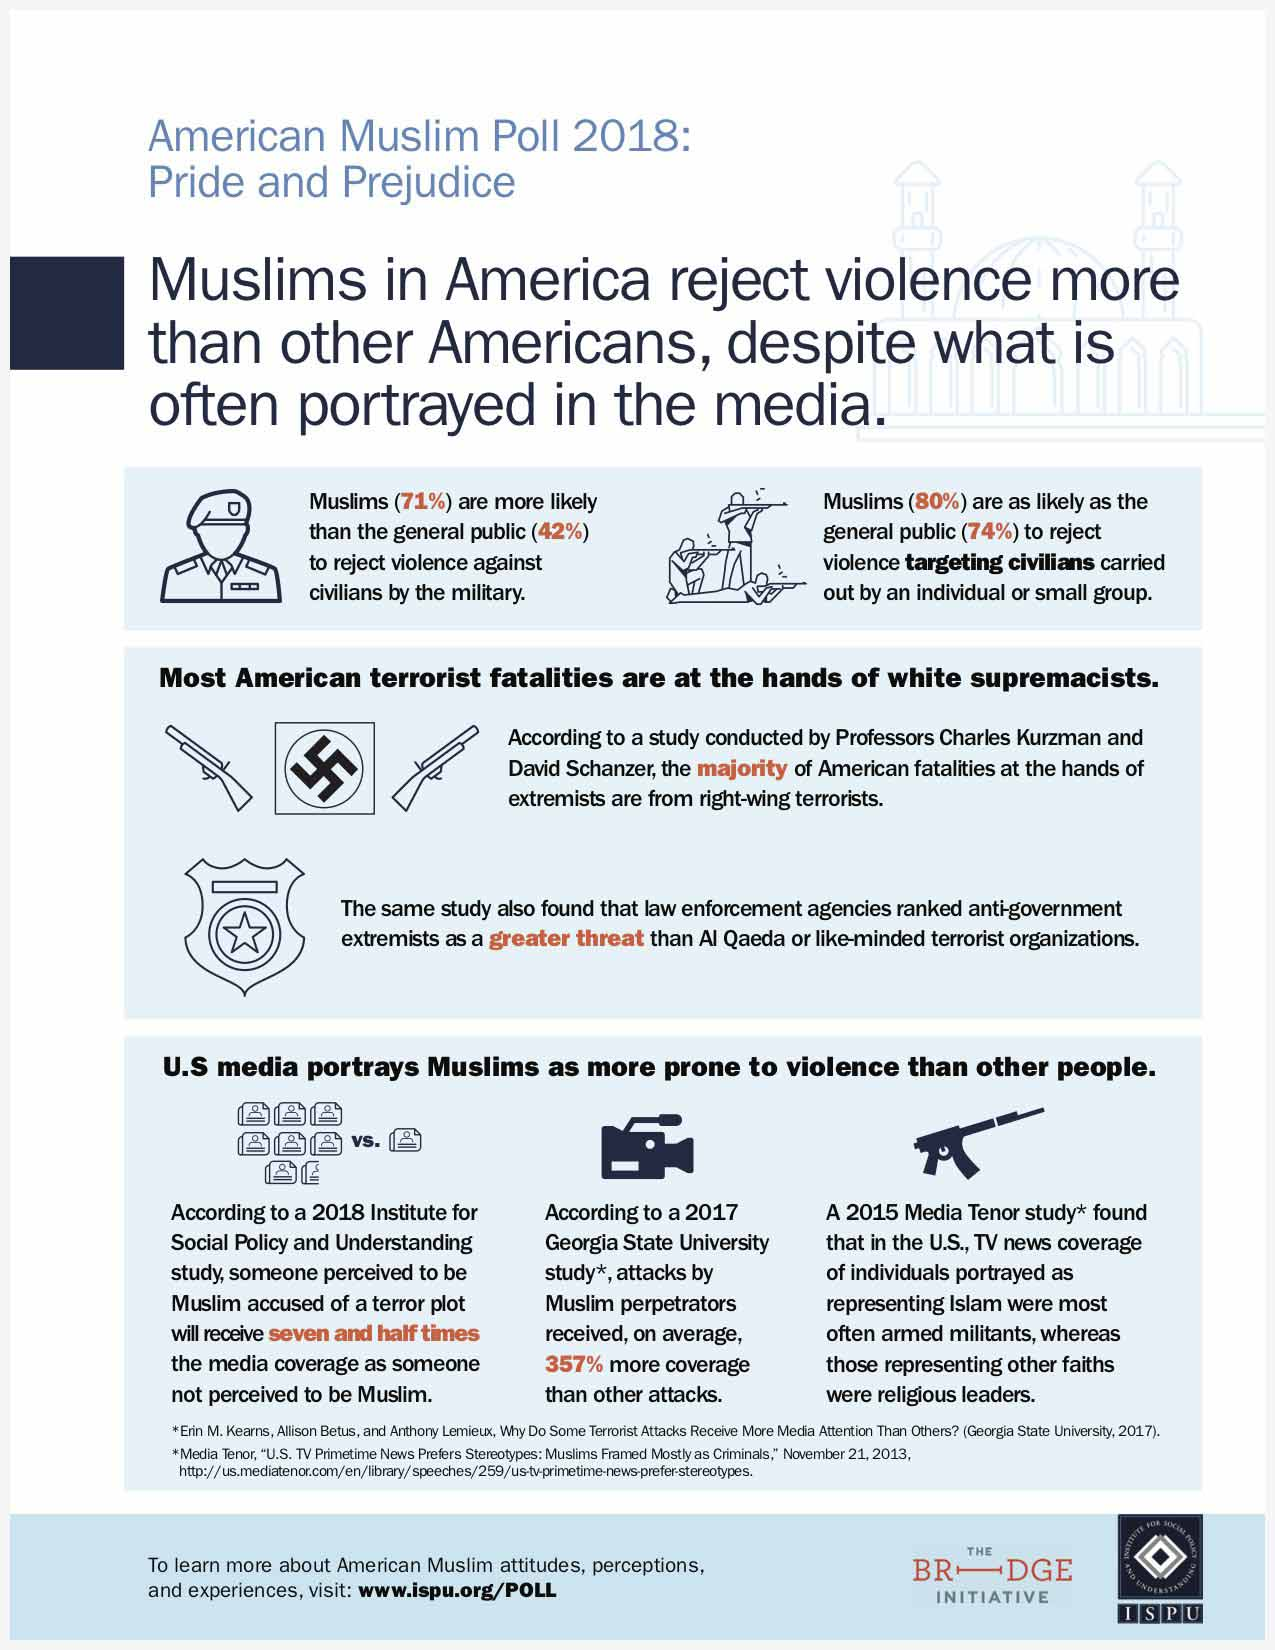 Muslims in America reject violence more than other Americans, despite what is often portrayed in the media infographic